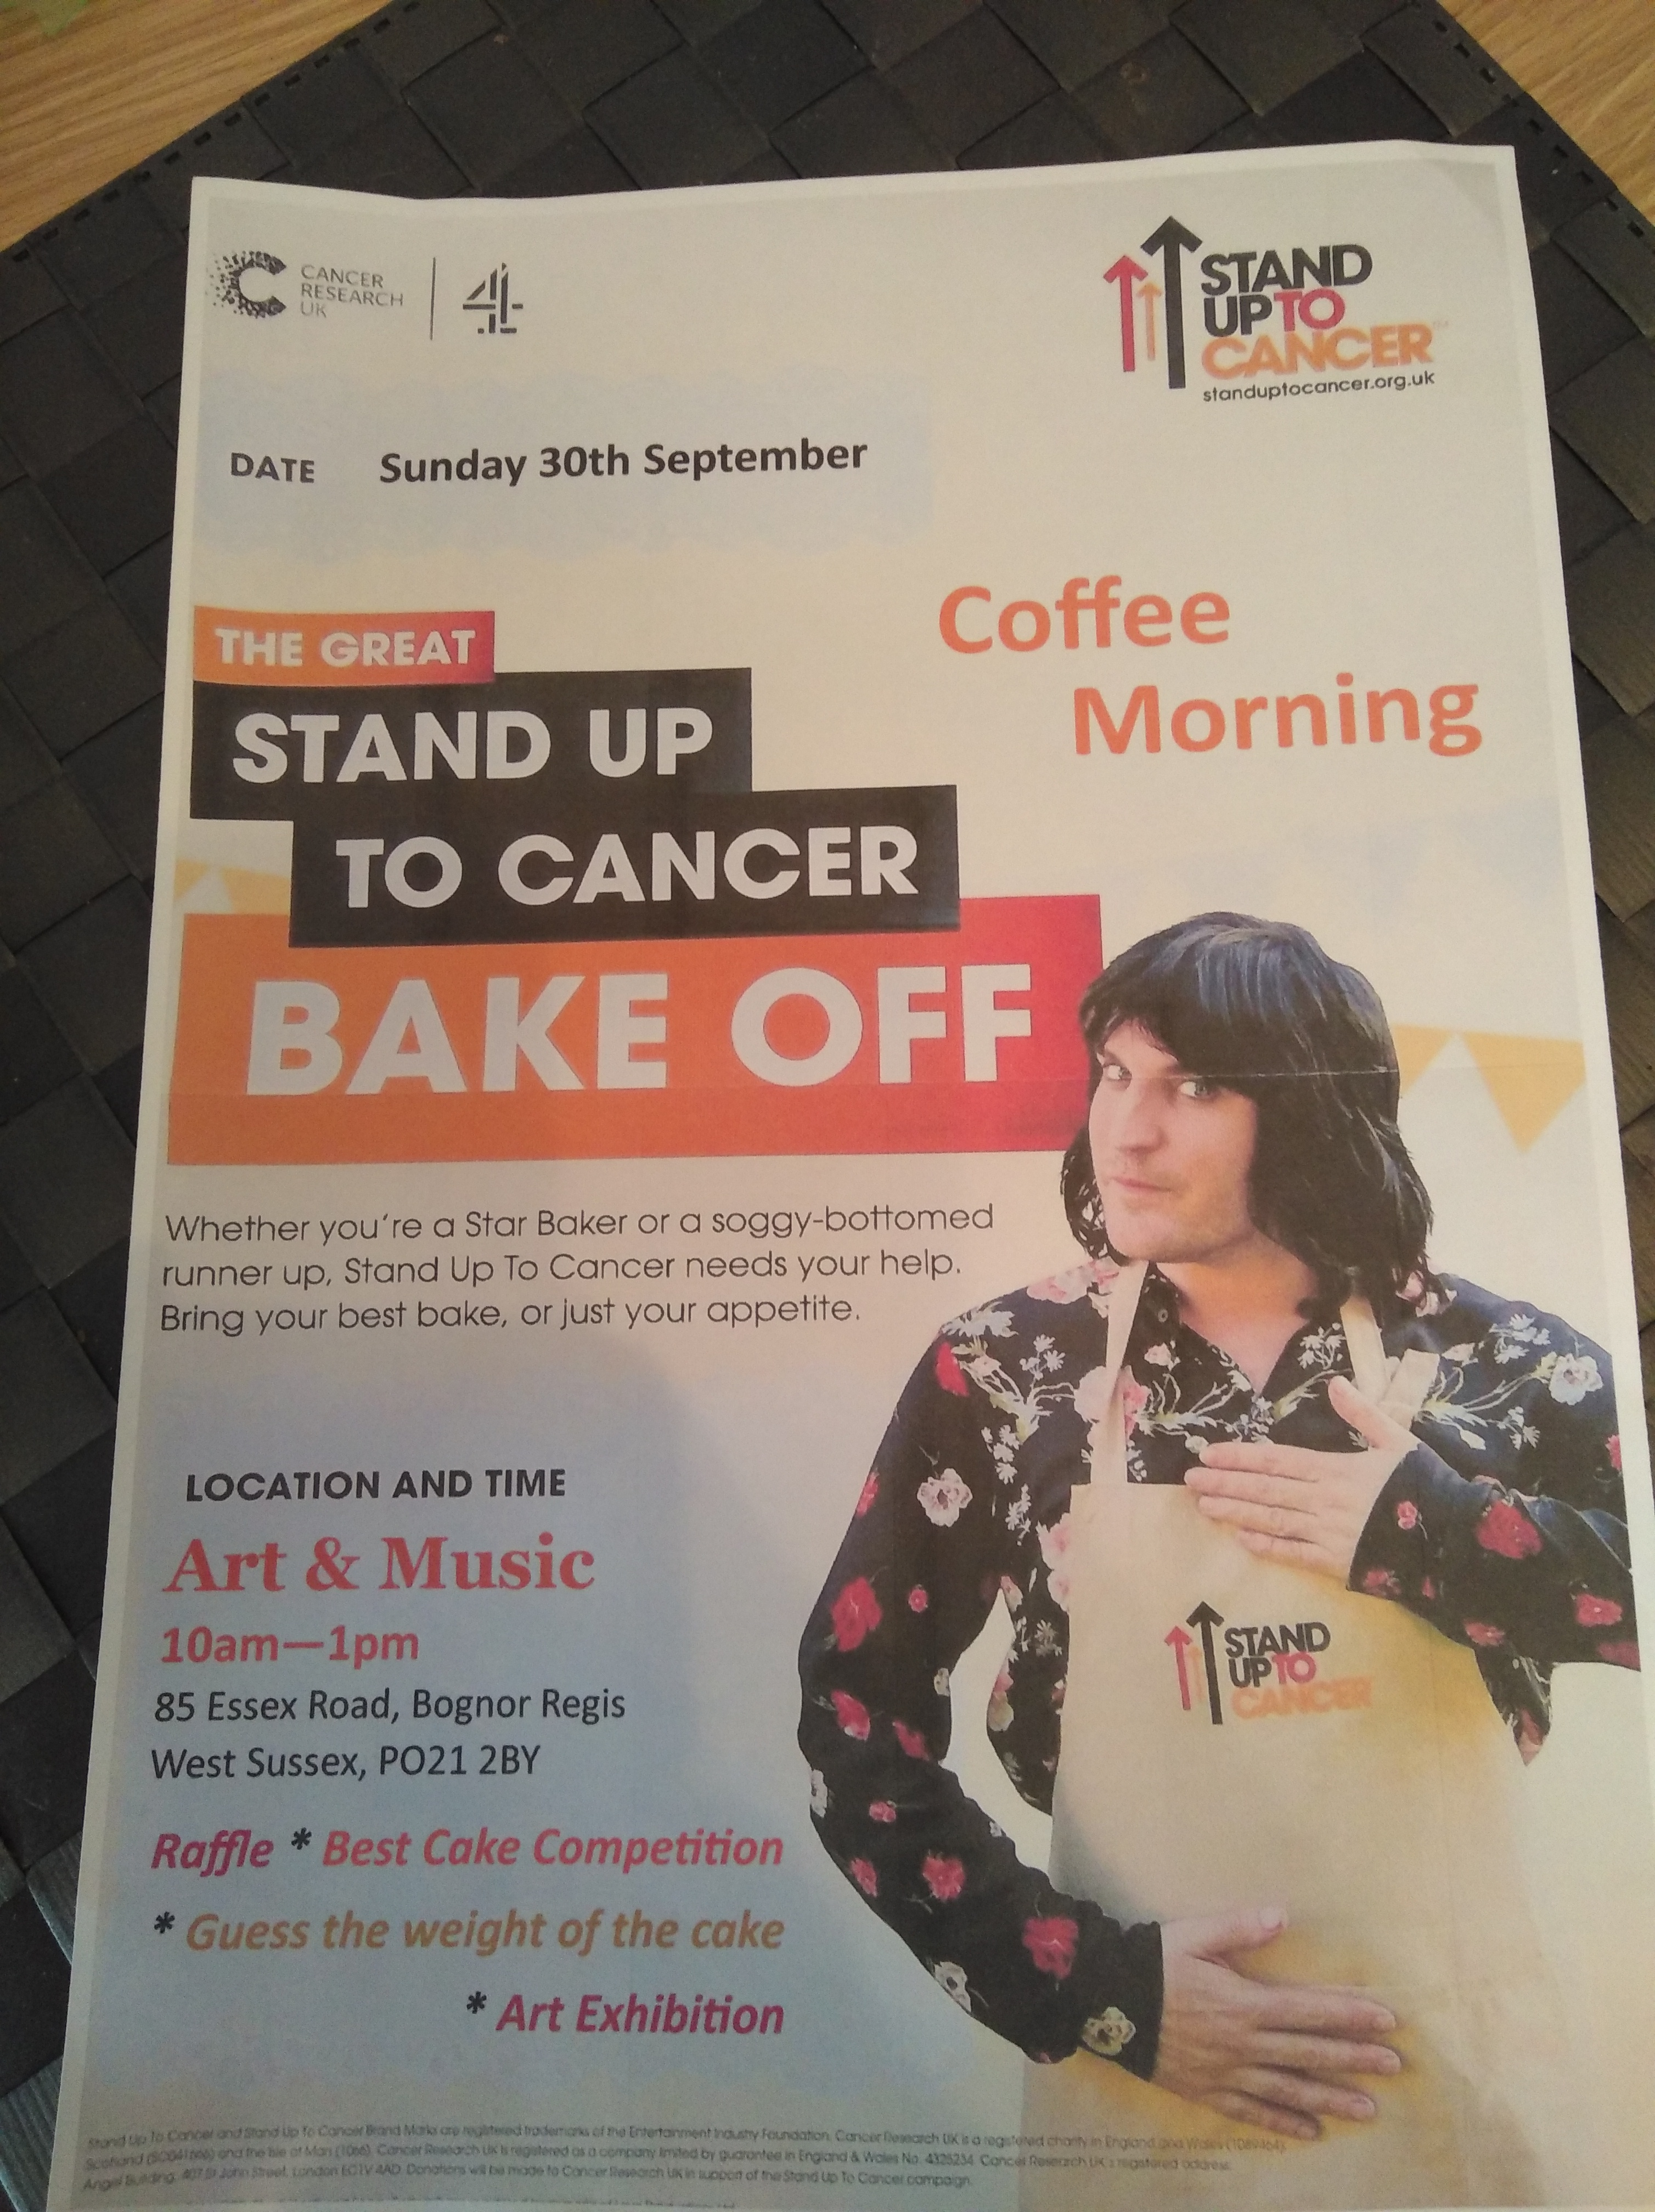 Coffee Morning/ Stand up to Cancer Poster